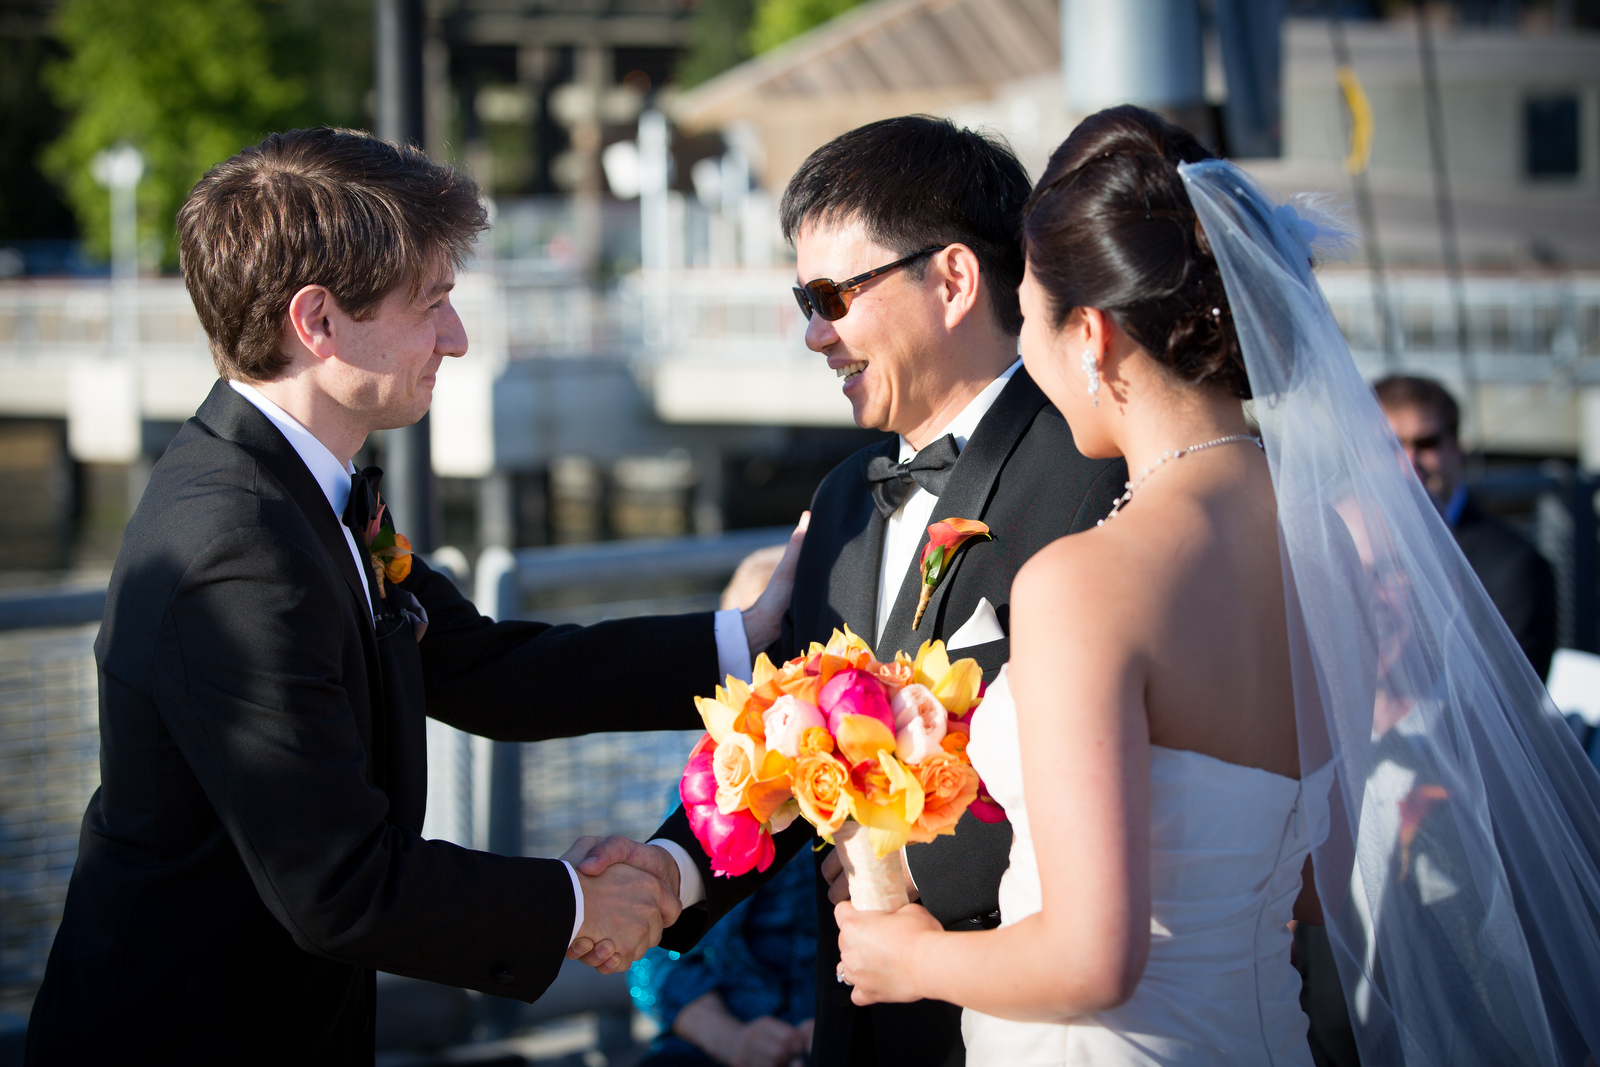 The father-of-the-bride shakes hands with the groom after he escorted the bride down the aisle during the wedding ceremony at the Seattle Aquarium. (Wedding Photography by Scott Eklund - Red Box Pictures)